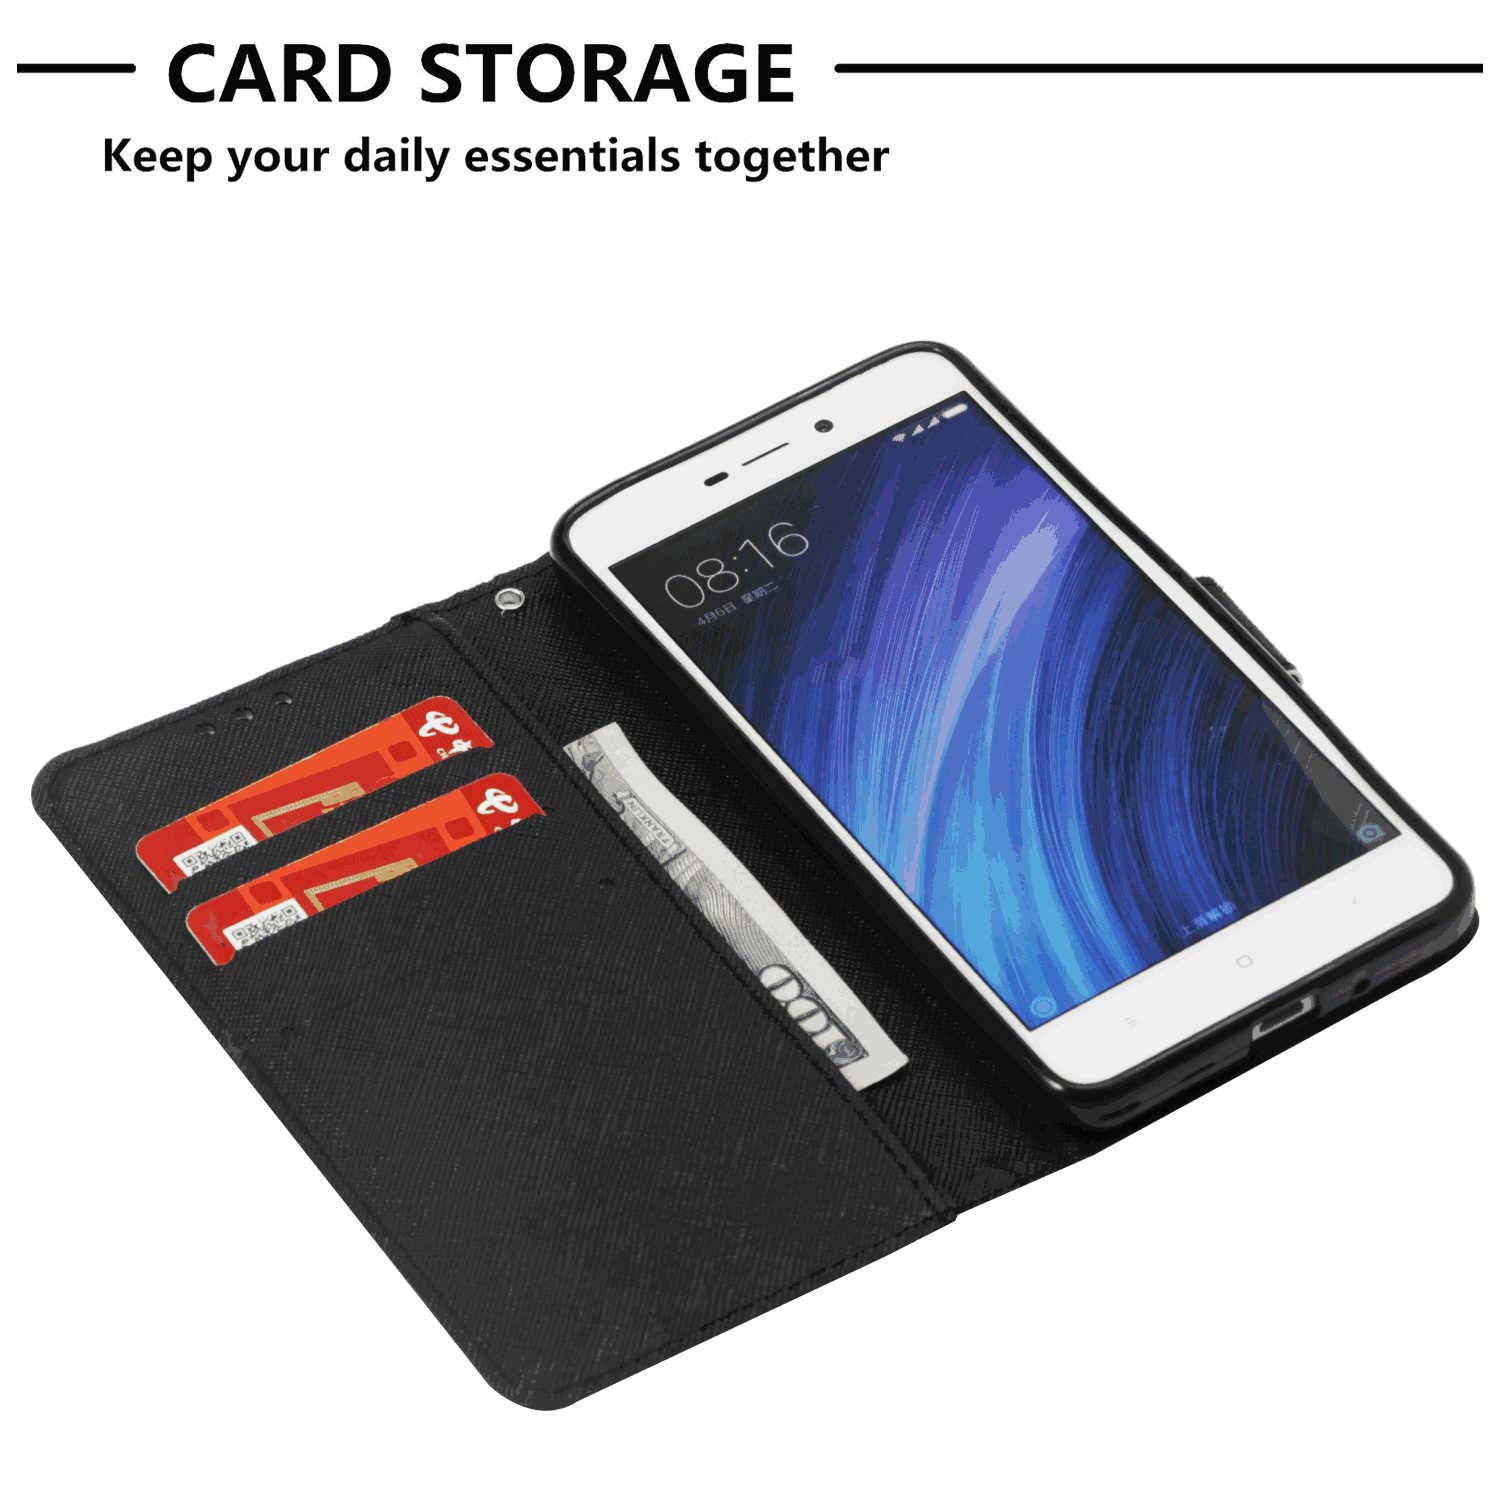 Samsung Galaxy S10 Flip Case Cover for Samsung Galaxy S10 Leather Card Holders Wallet Cover Kickstand Extra-Protective Business with Free Waterproof-Bag